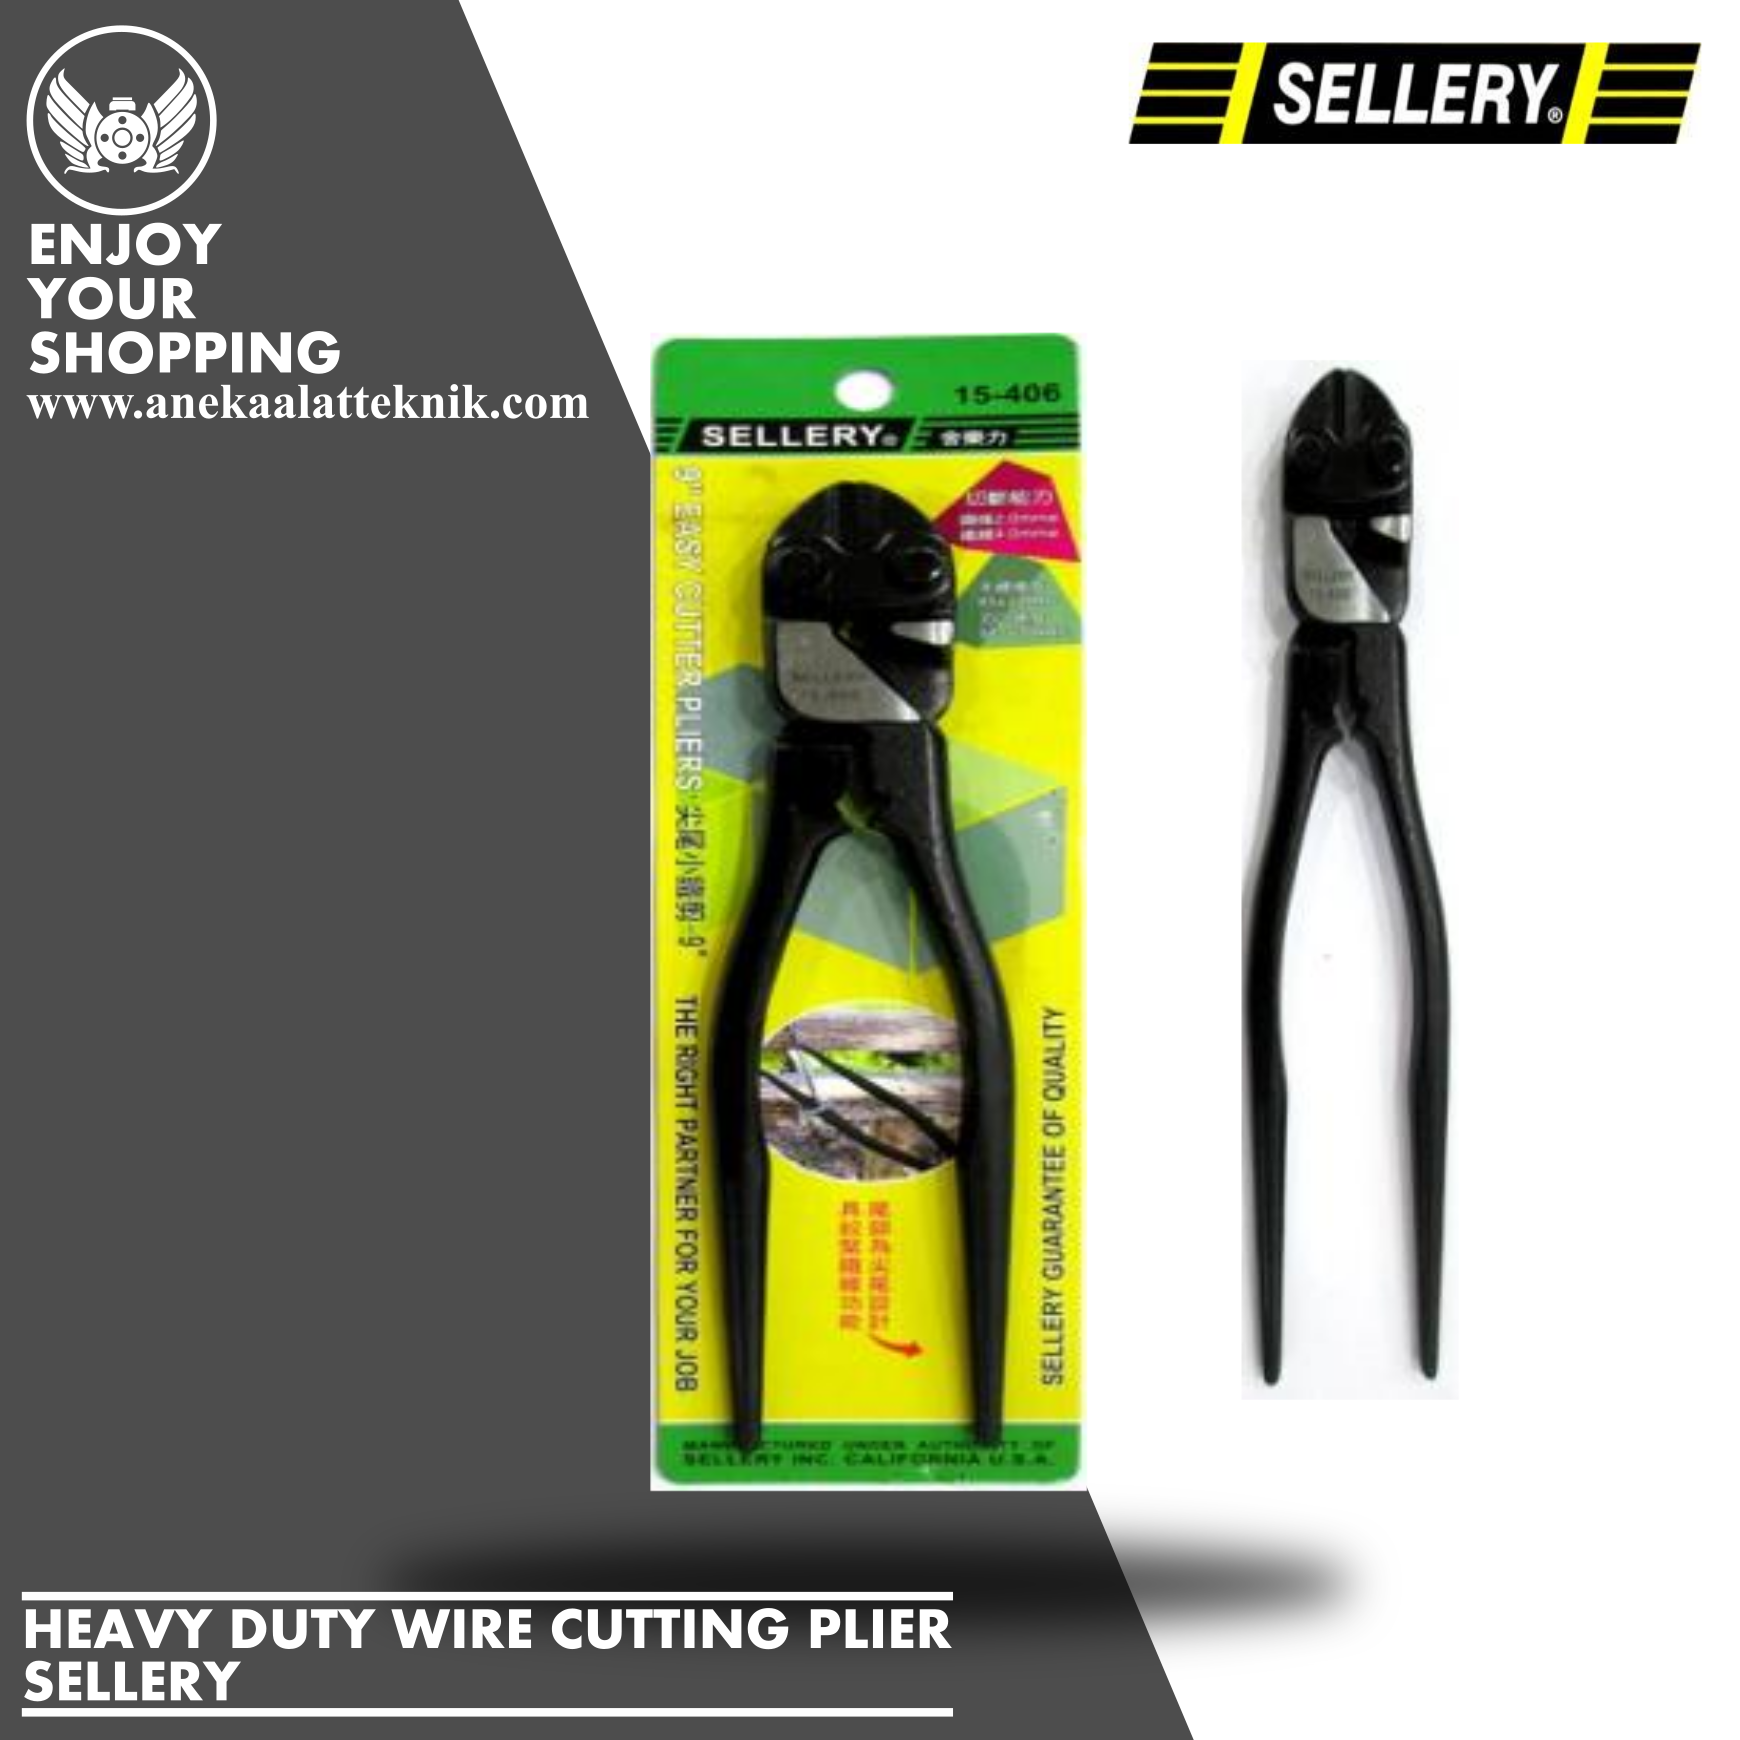 HEAVY DUTY WIRE CUTTER PLIER 915-406